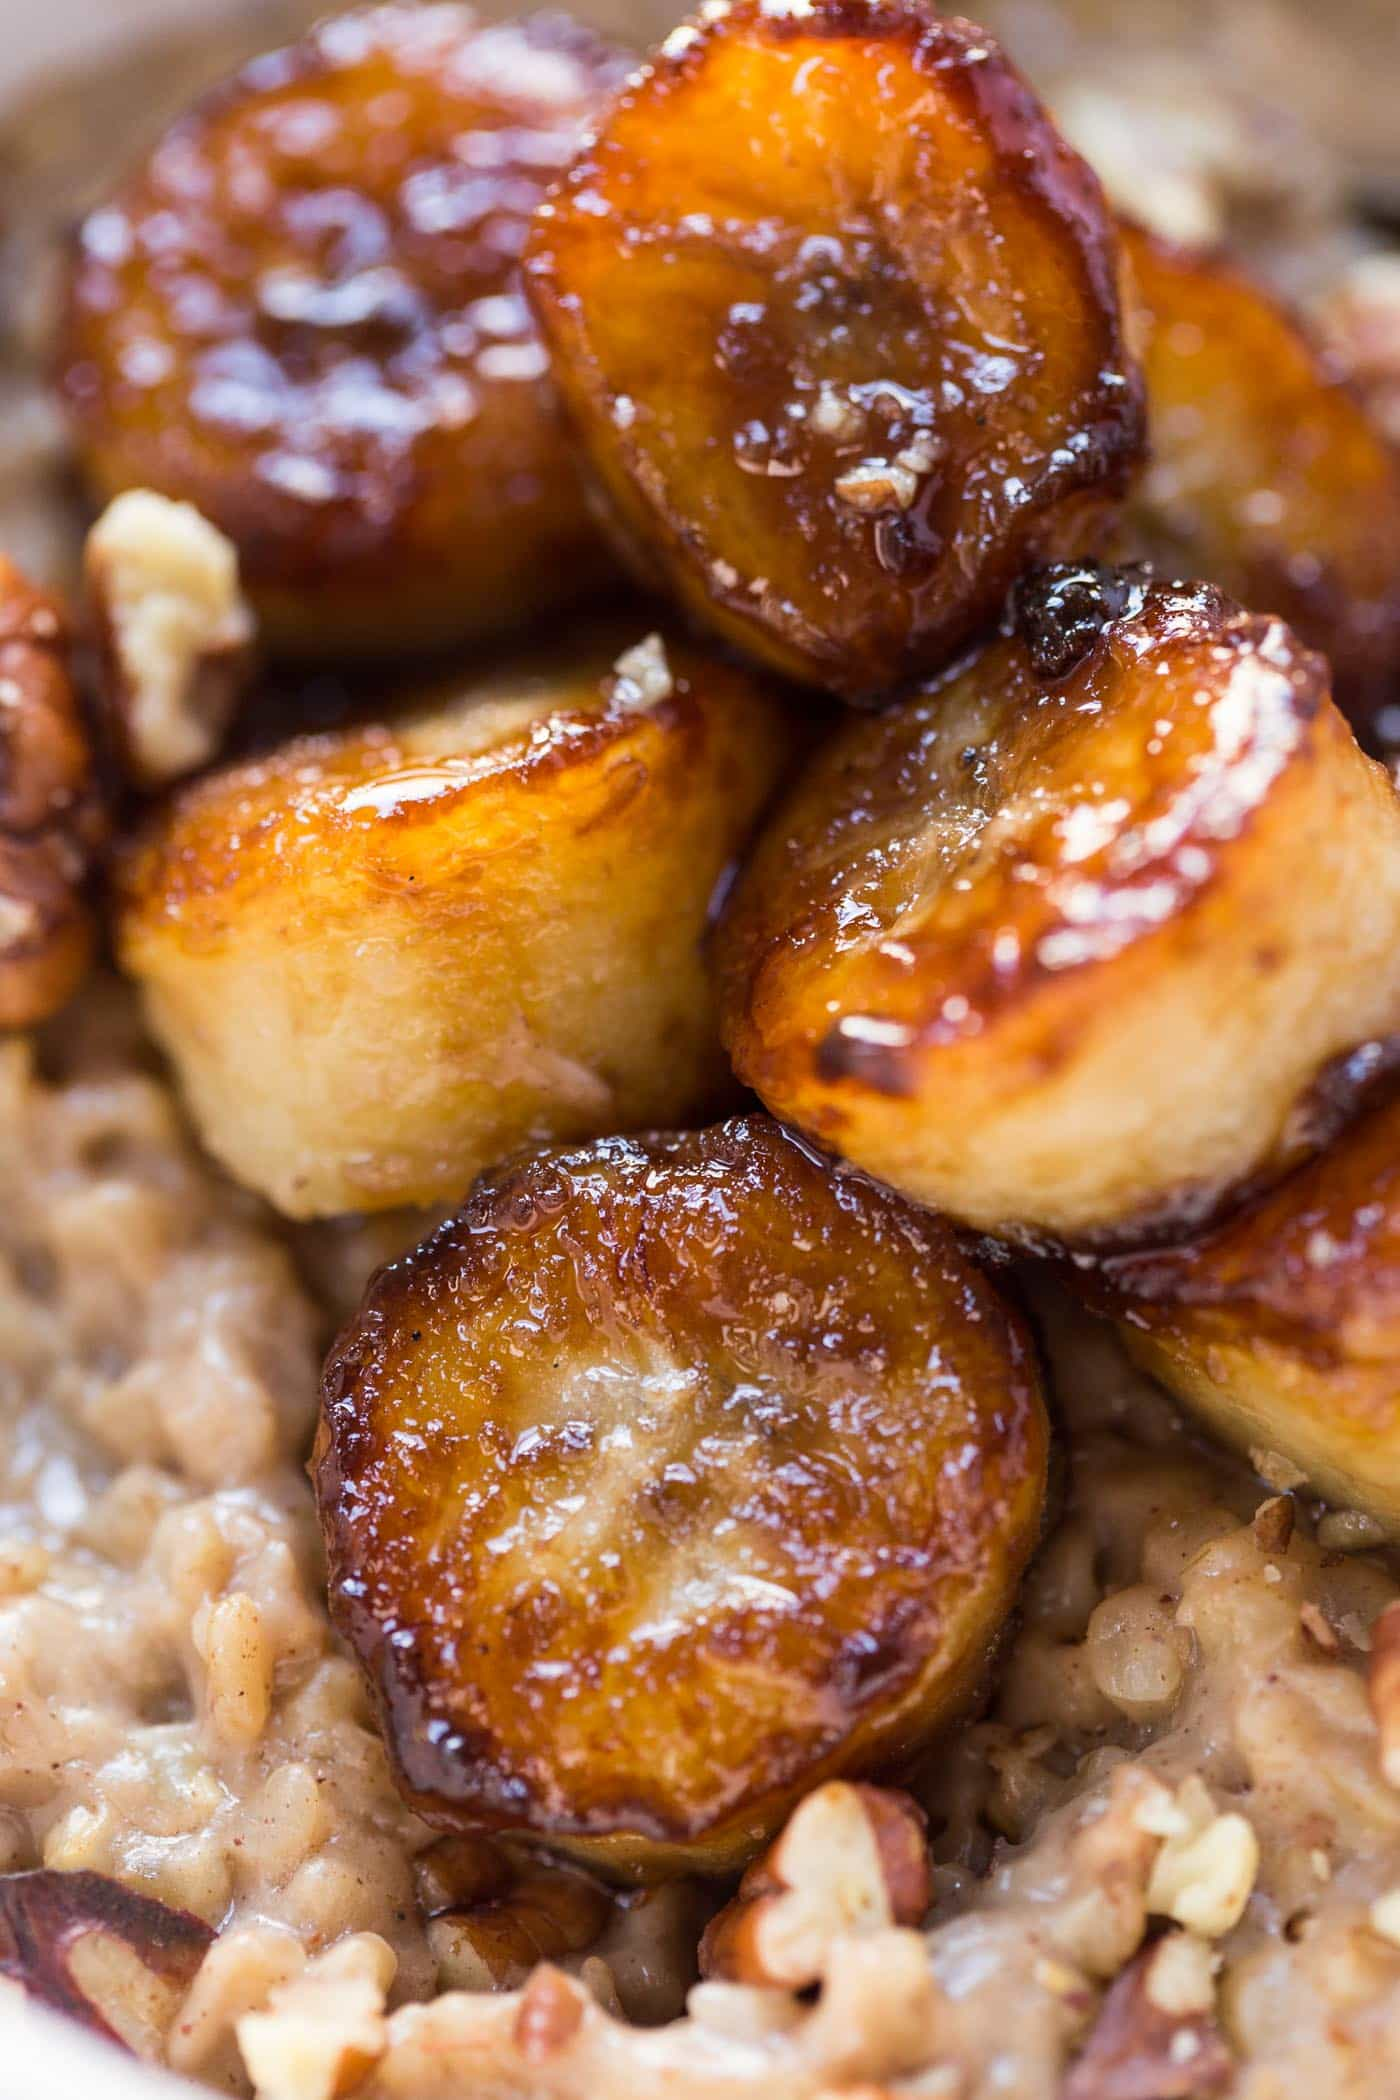 How to make caramelized bananas with just 3 INGREDIENTS [vegan + gluten-free]